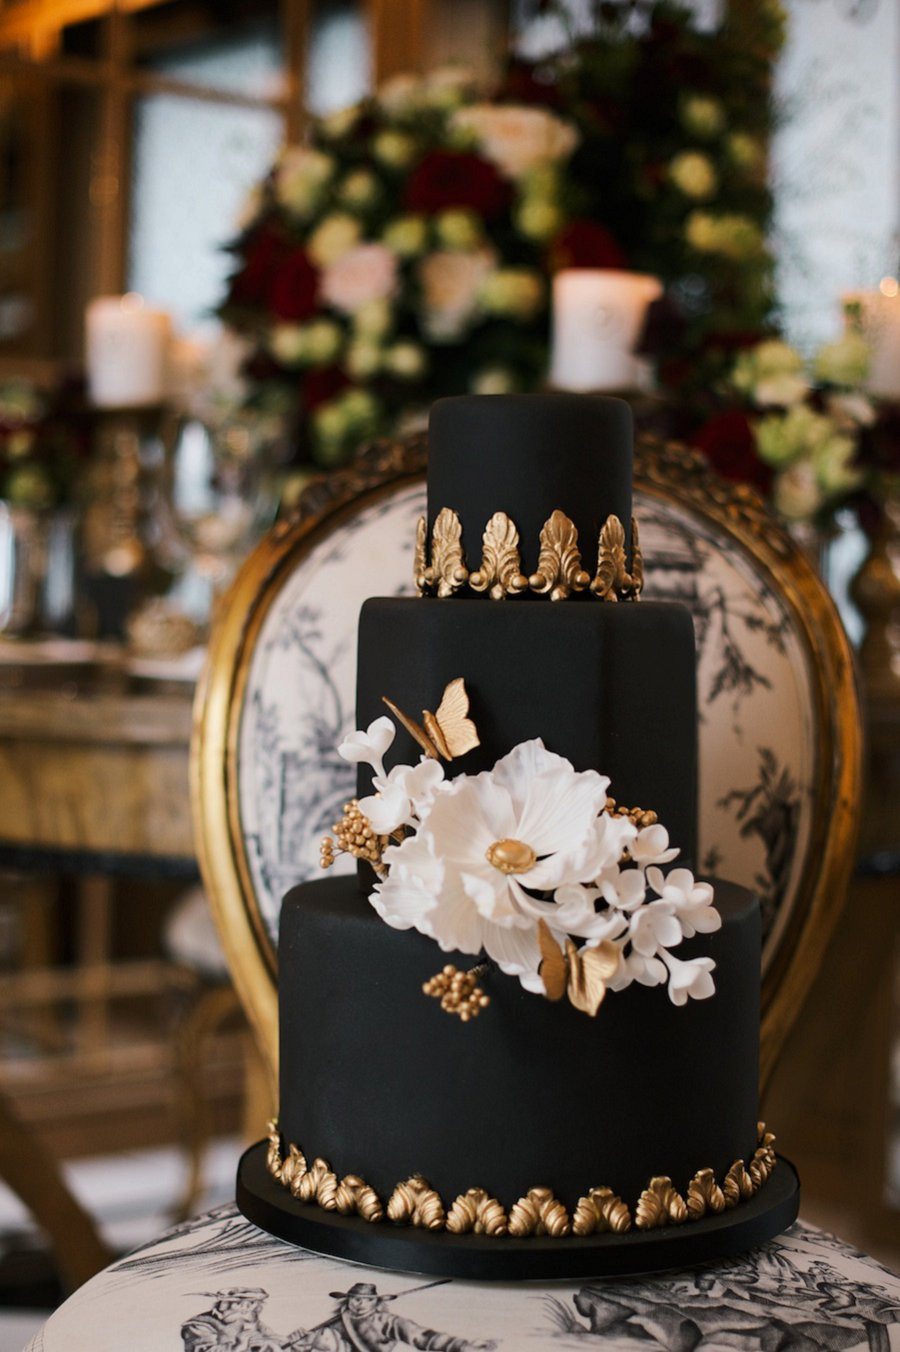 2016 Wedding Cakes  Top 10 Wedding Cake Trends for 2016